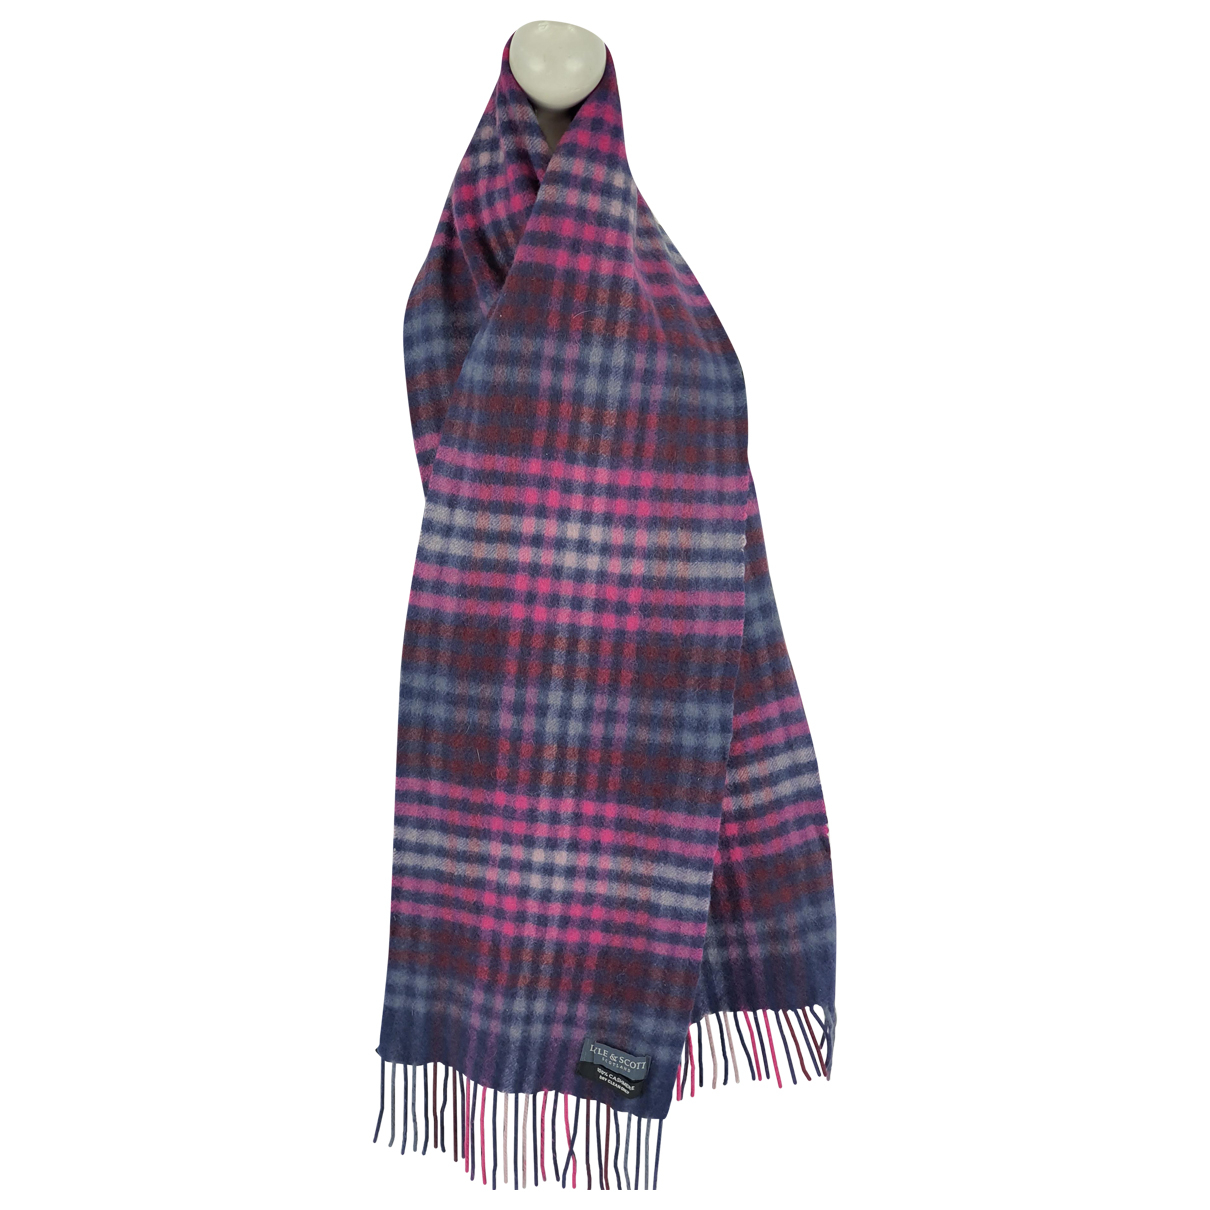 Lyle And Scott - Foulard   pour femme en cachemire - multicolore